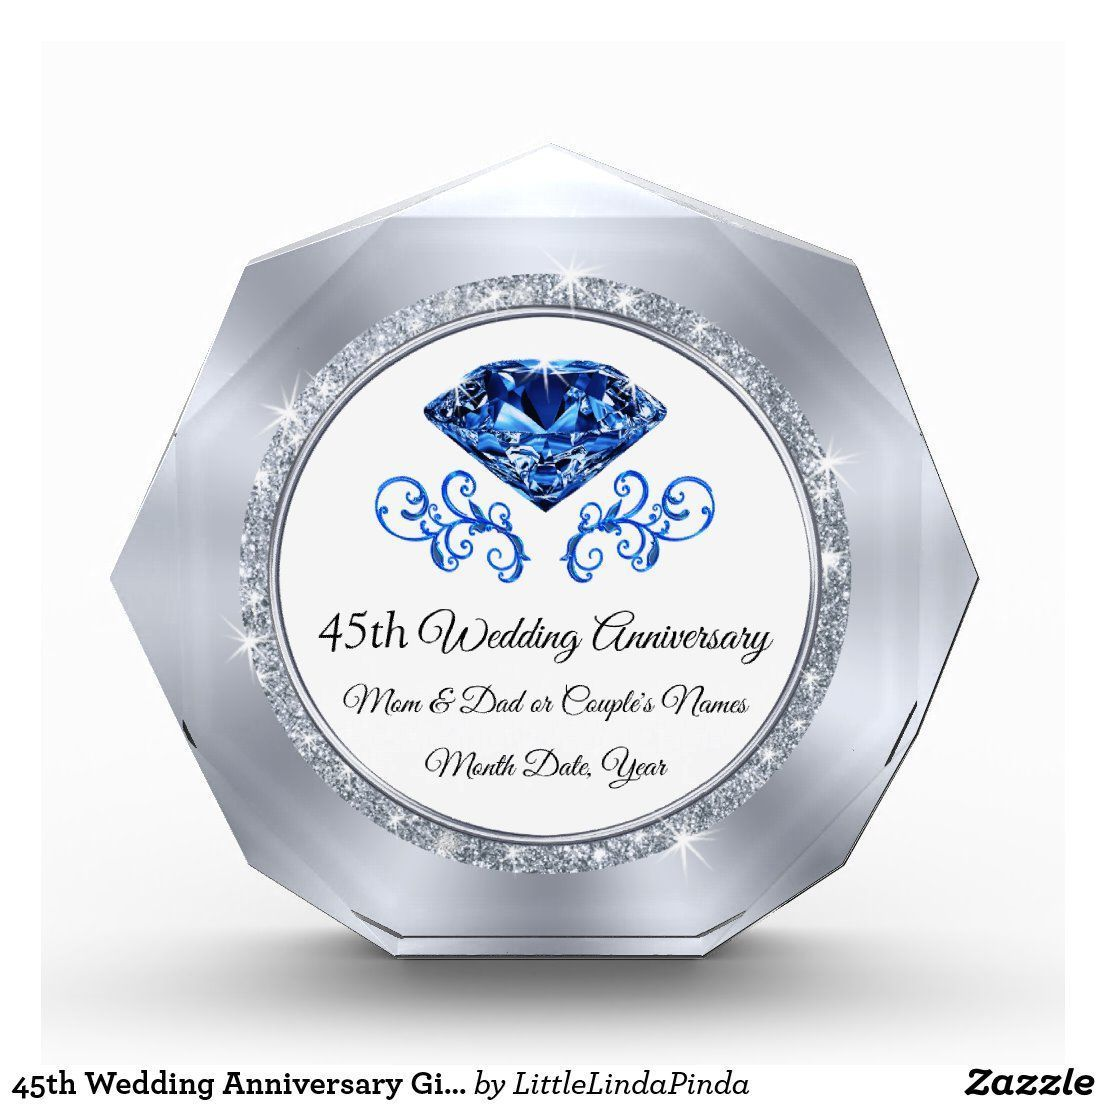 45th wedding anniversary gift ideas for parents in 2020